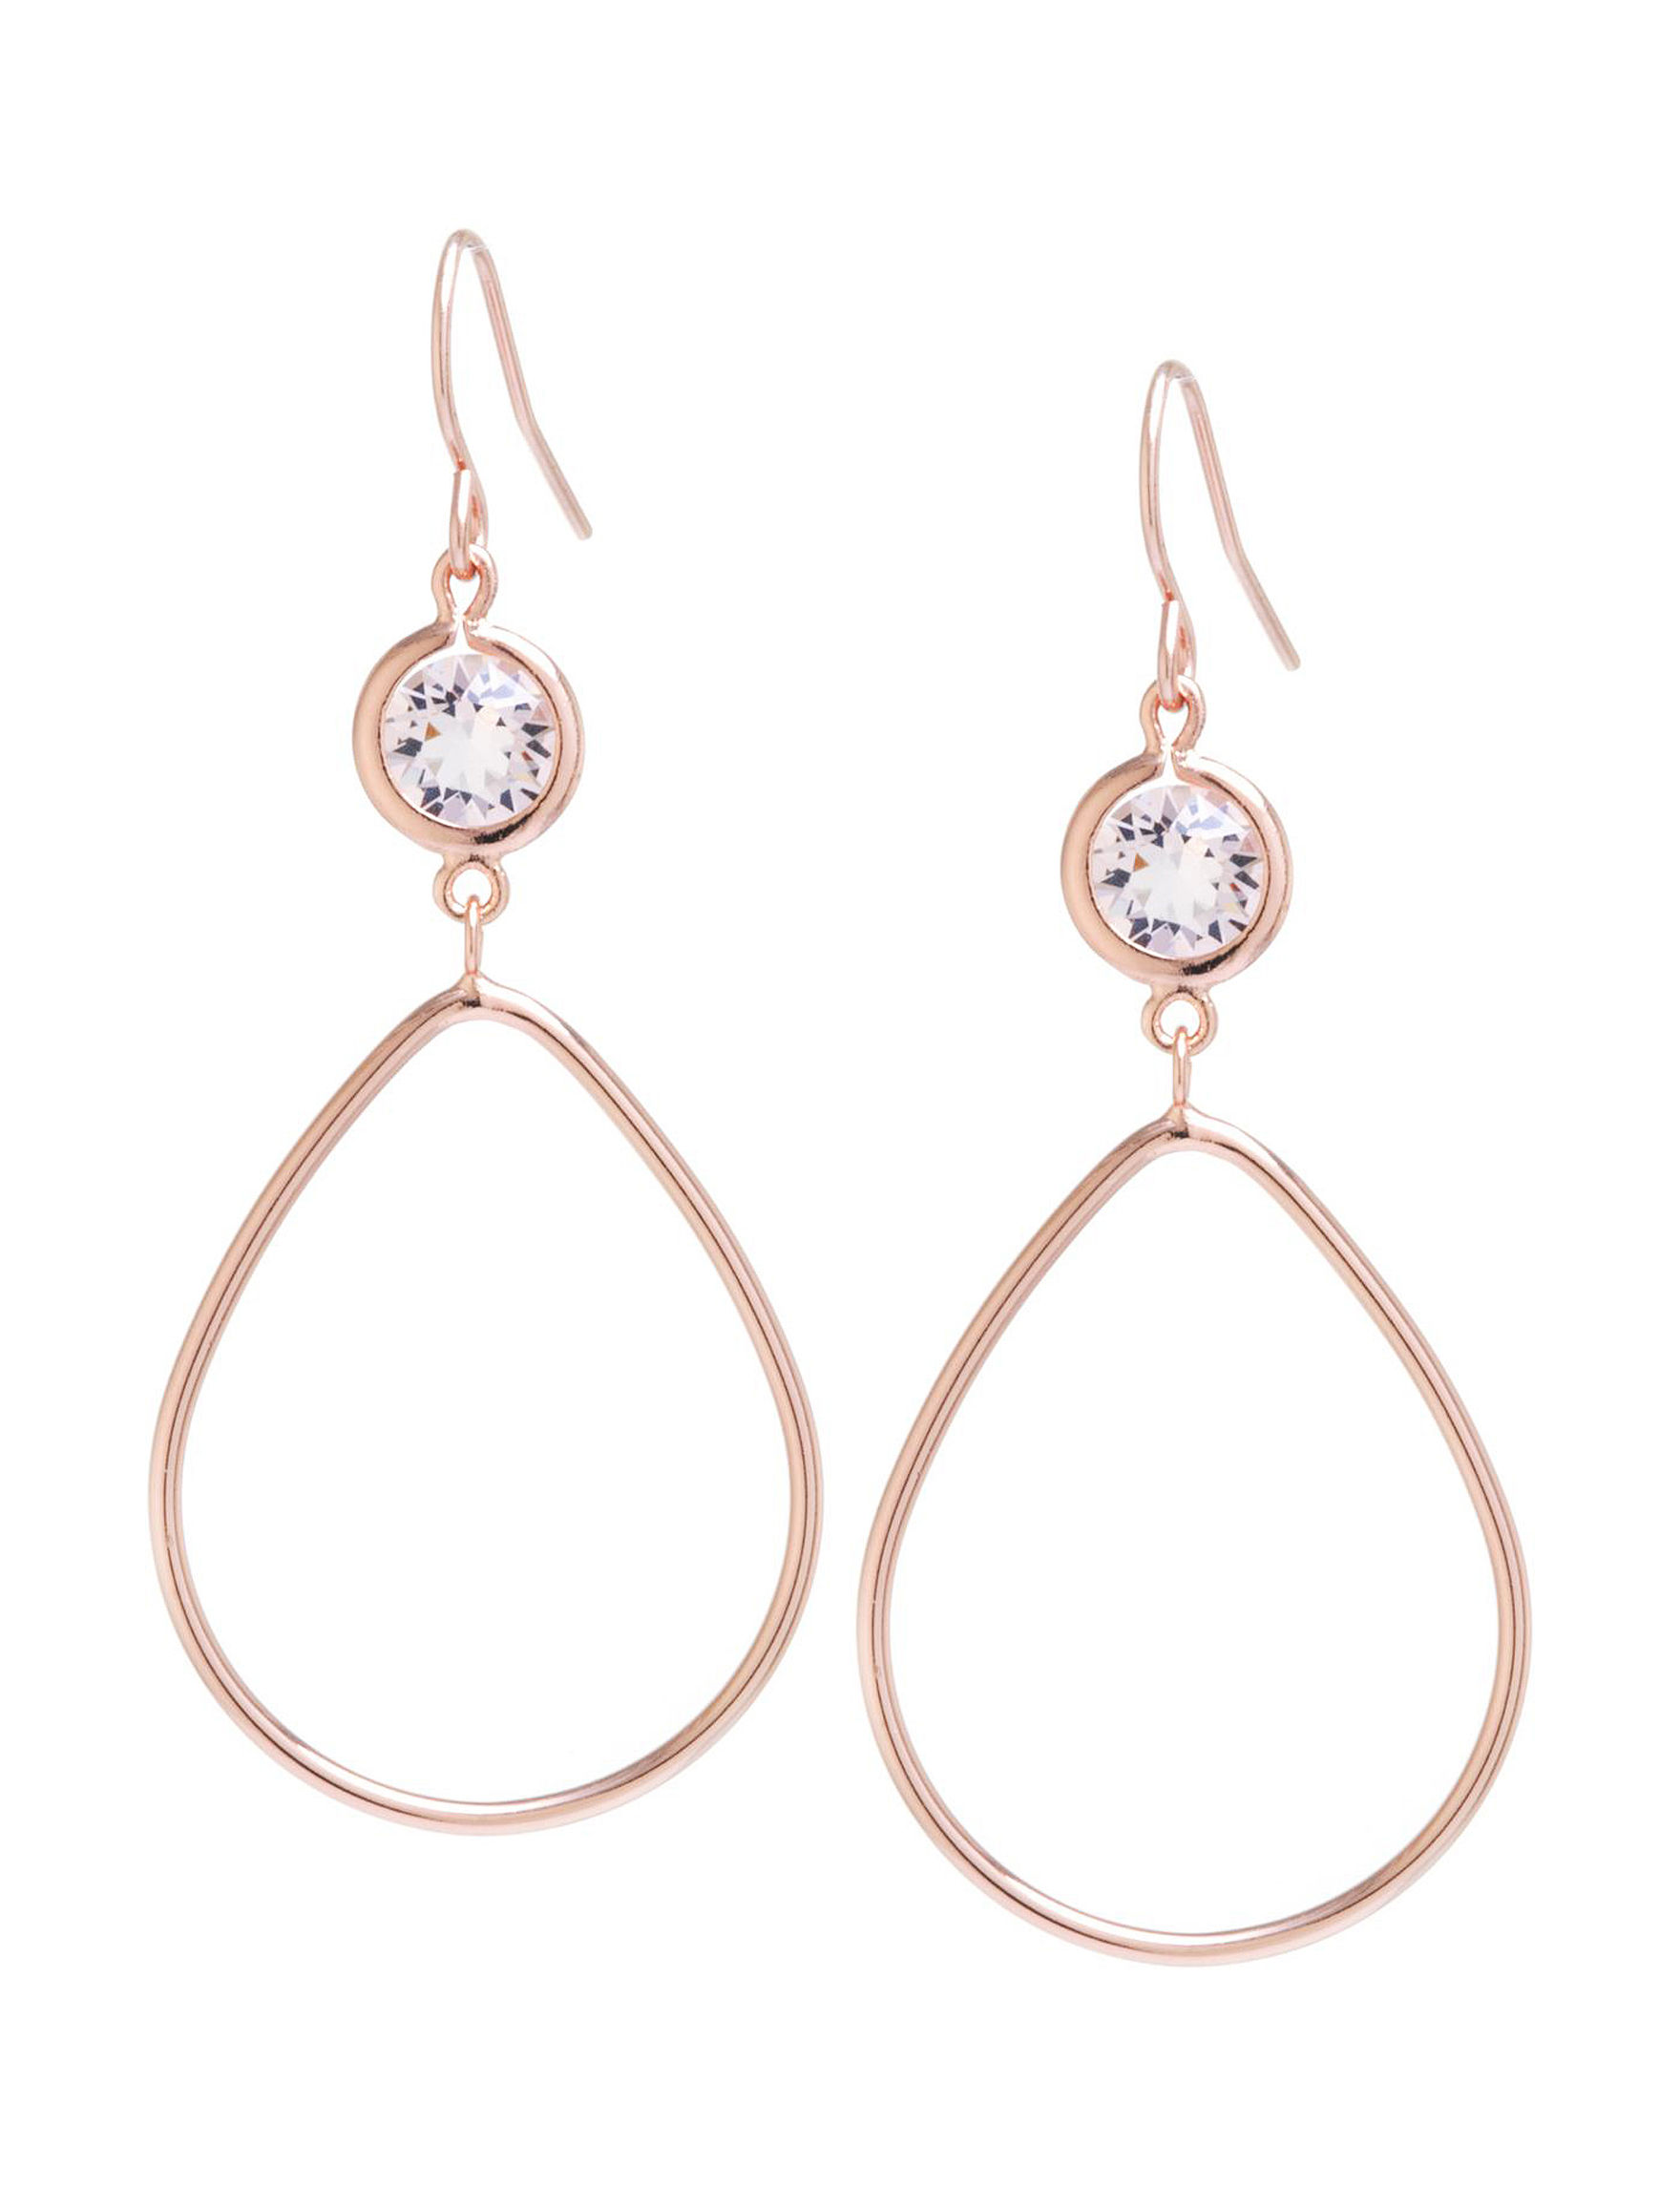 Athra Rose Gold Drops Earrings Fine Jewelry